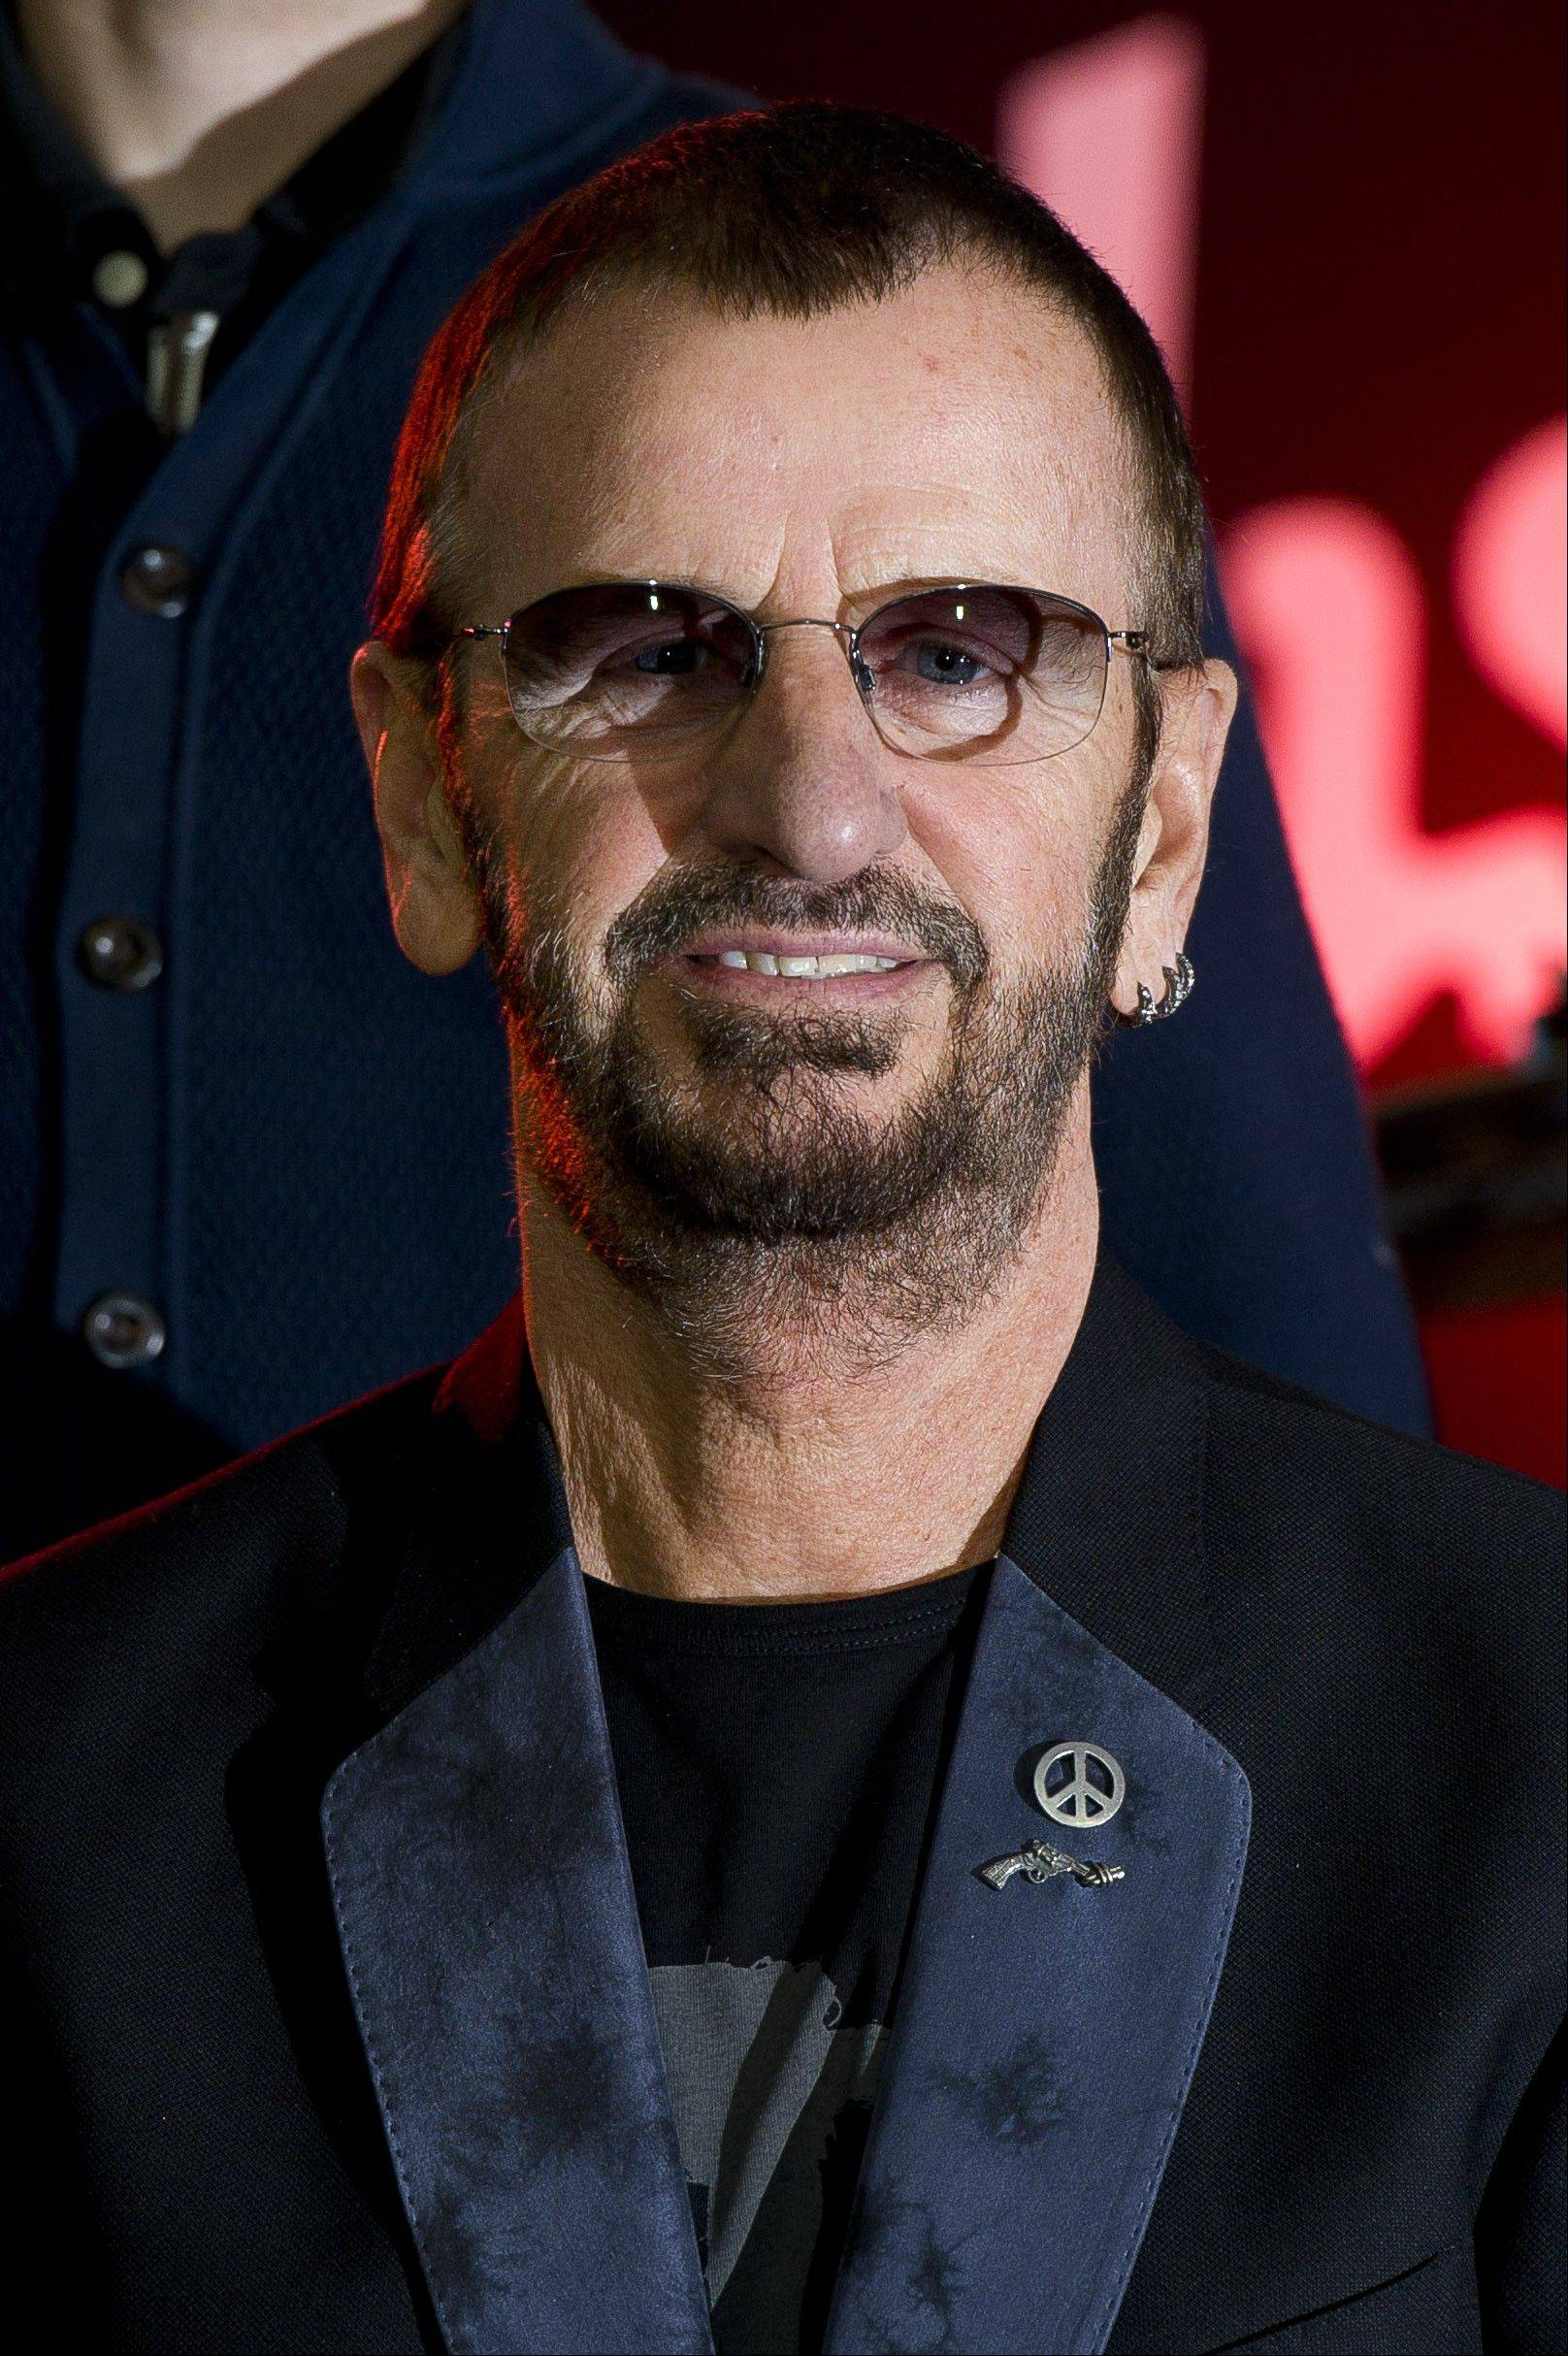 Ringo Starr and the All Starr Band comes to the Chicago Theatre for a show at 8 p.m. Saturday, June 28.